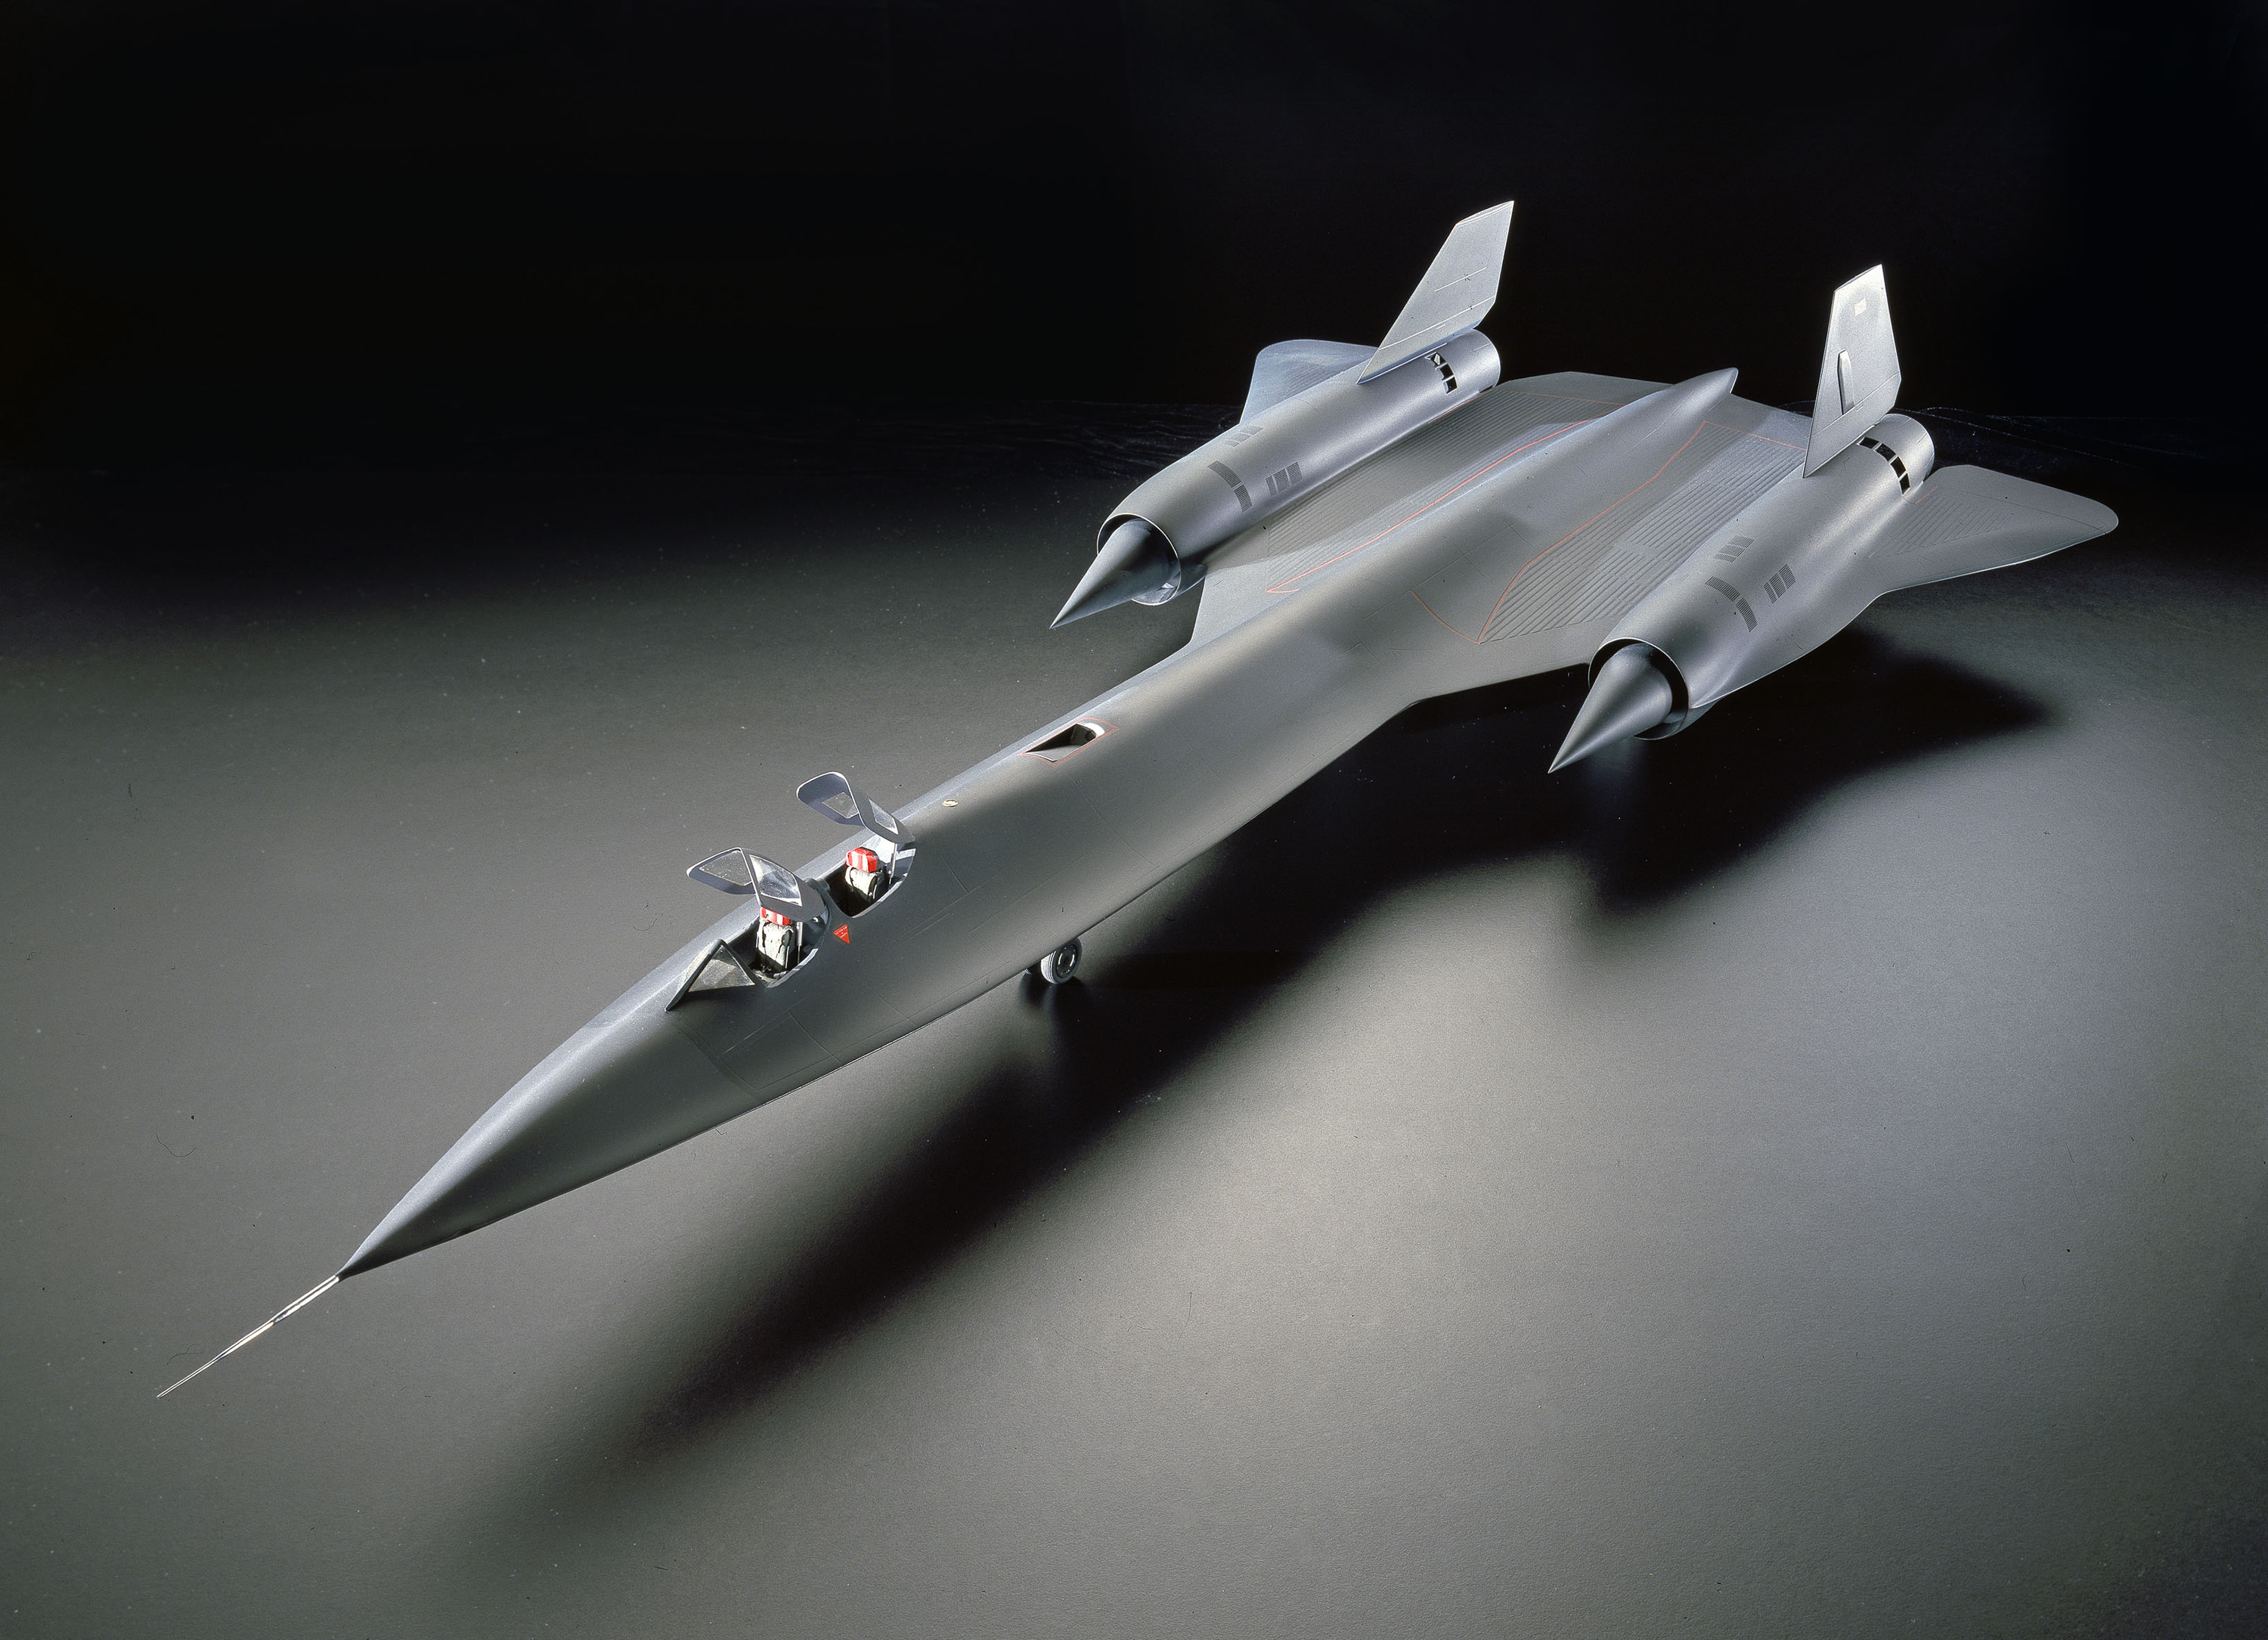 Lockheed SR-71 (Blackbird) model